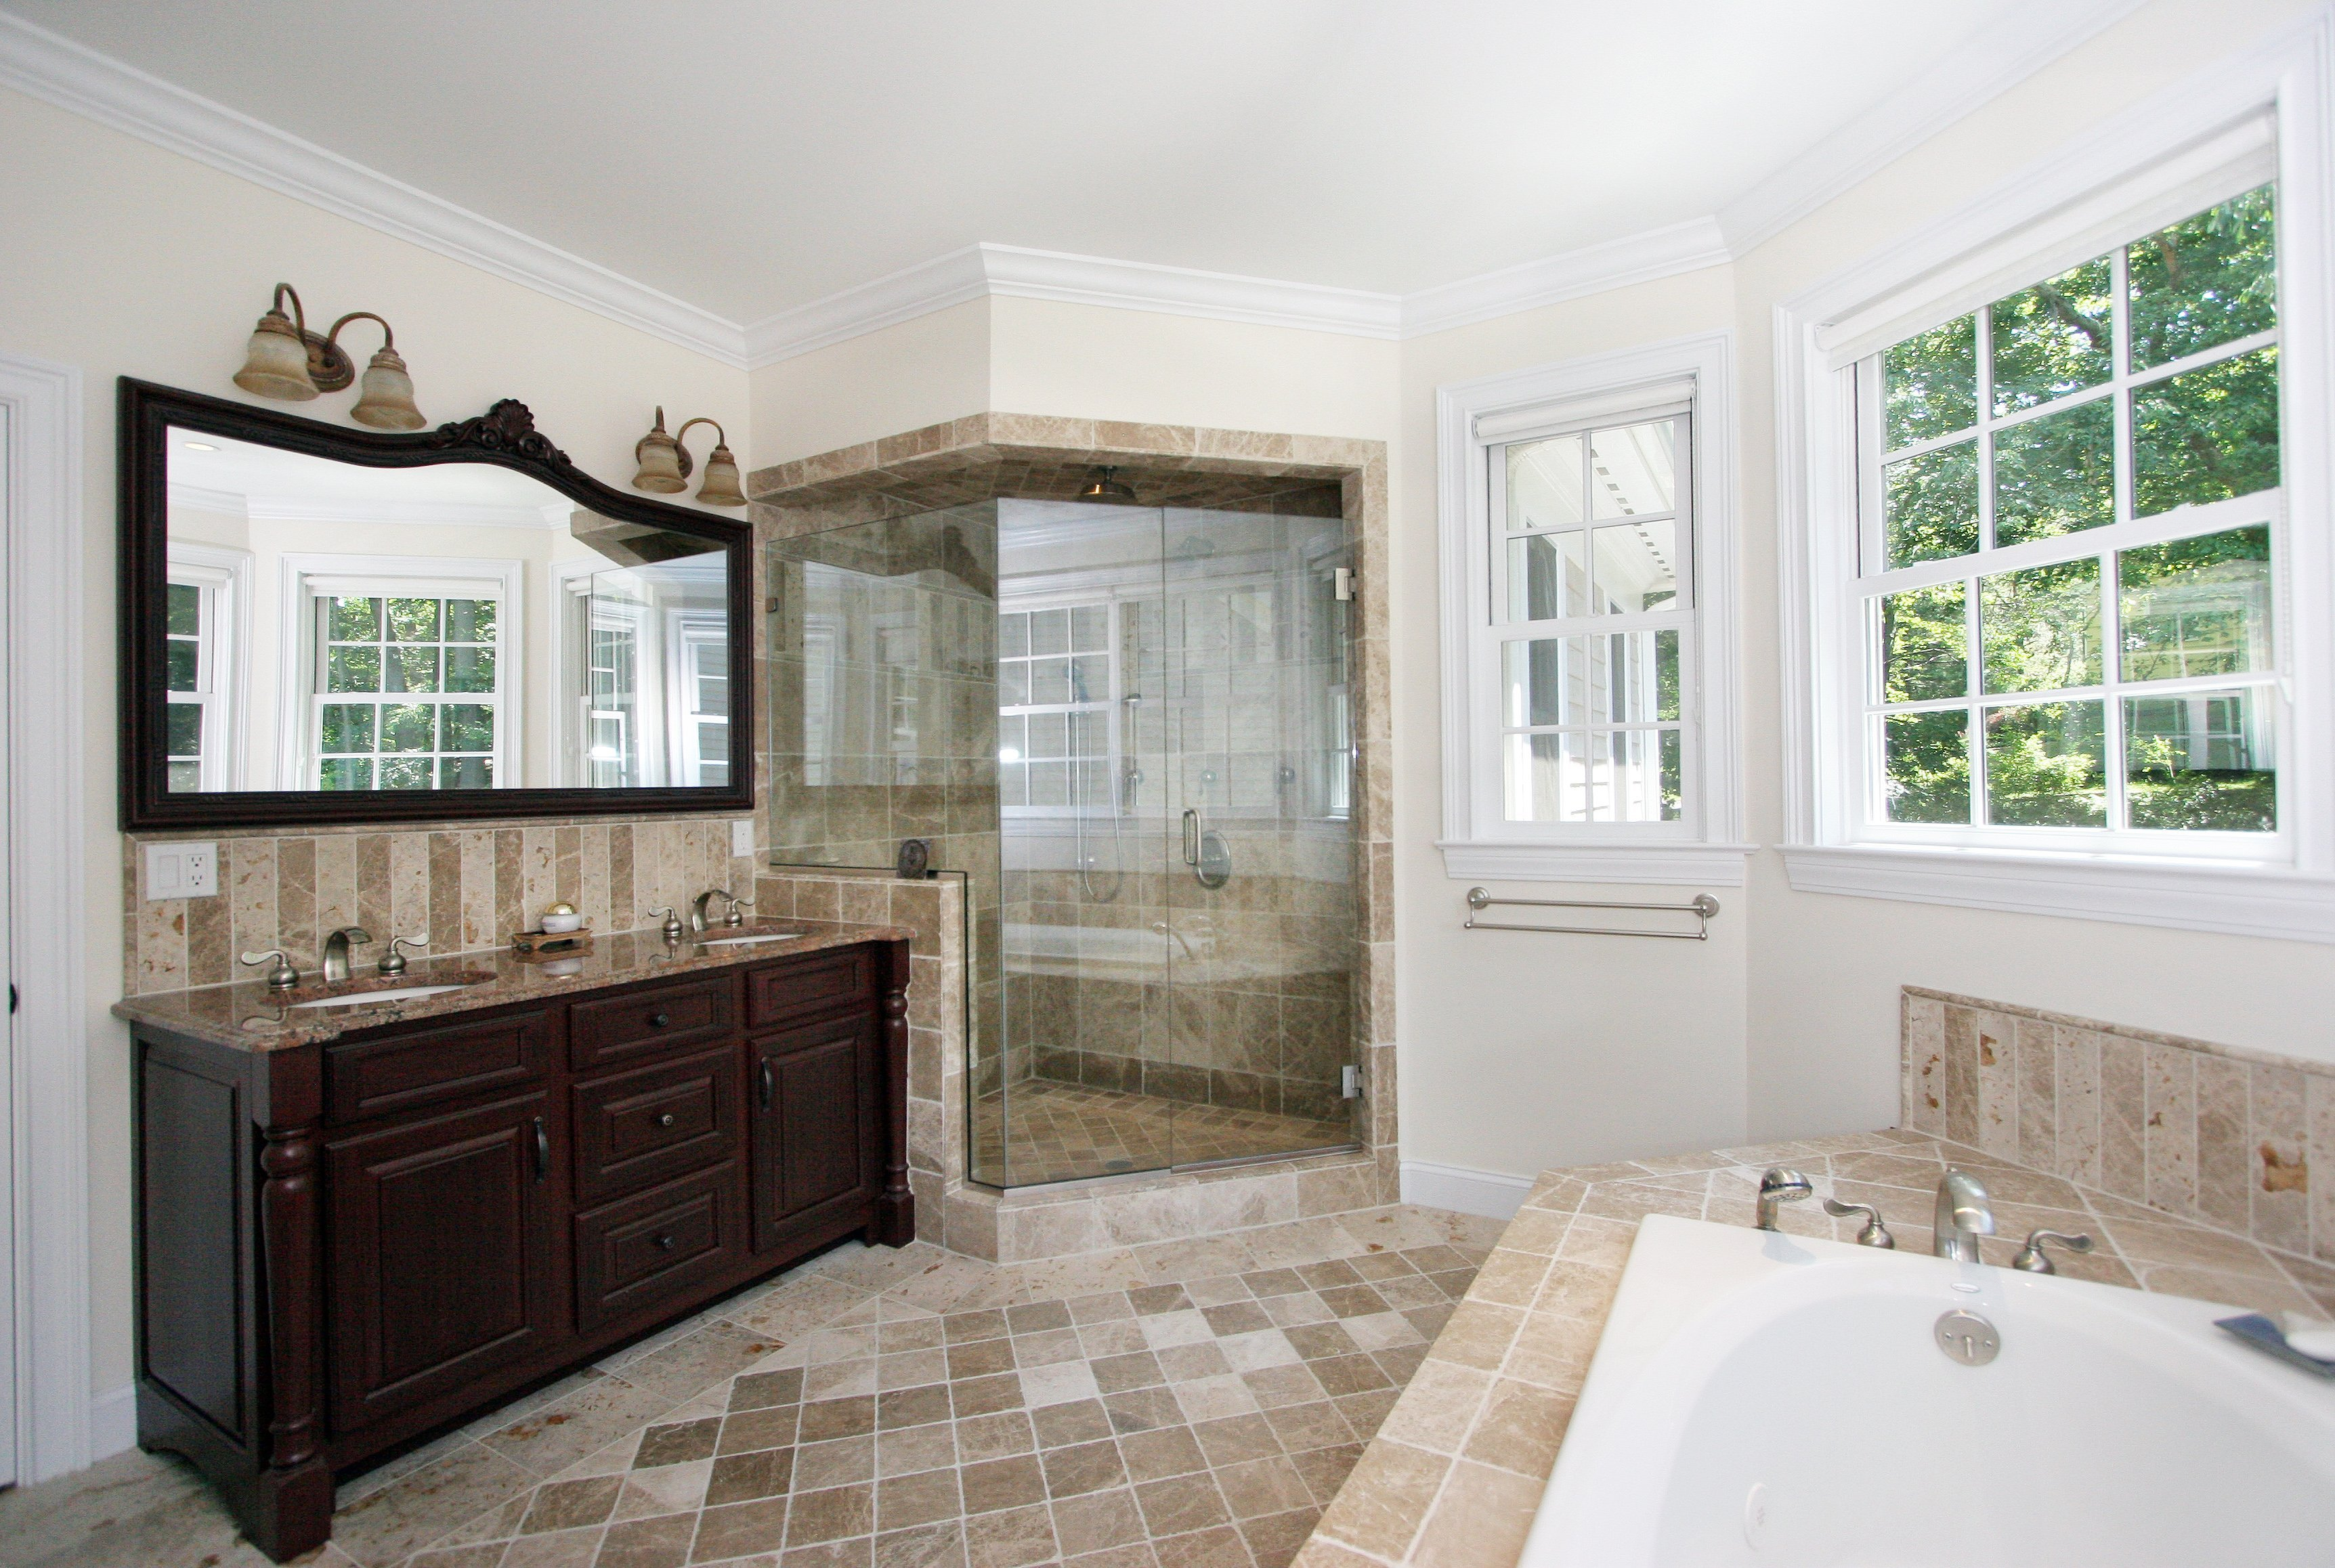 general contractor bathroom renovated by SIP Building Solutions - Westport, Fairfield, Stamford, Greenwich, Danbury CT